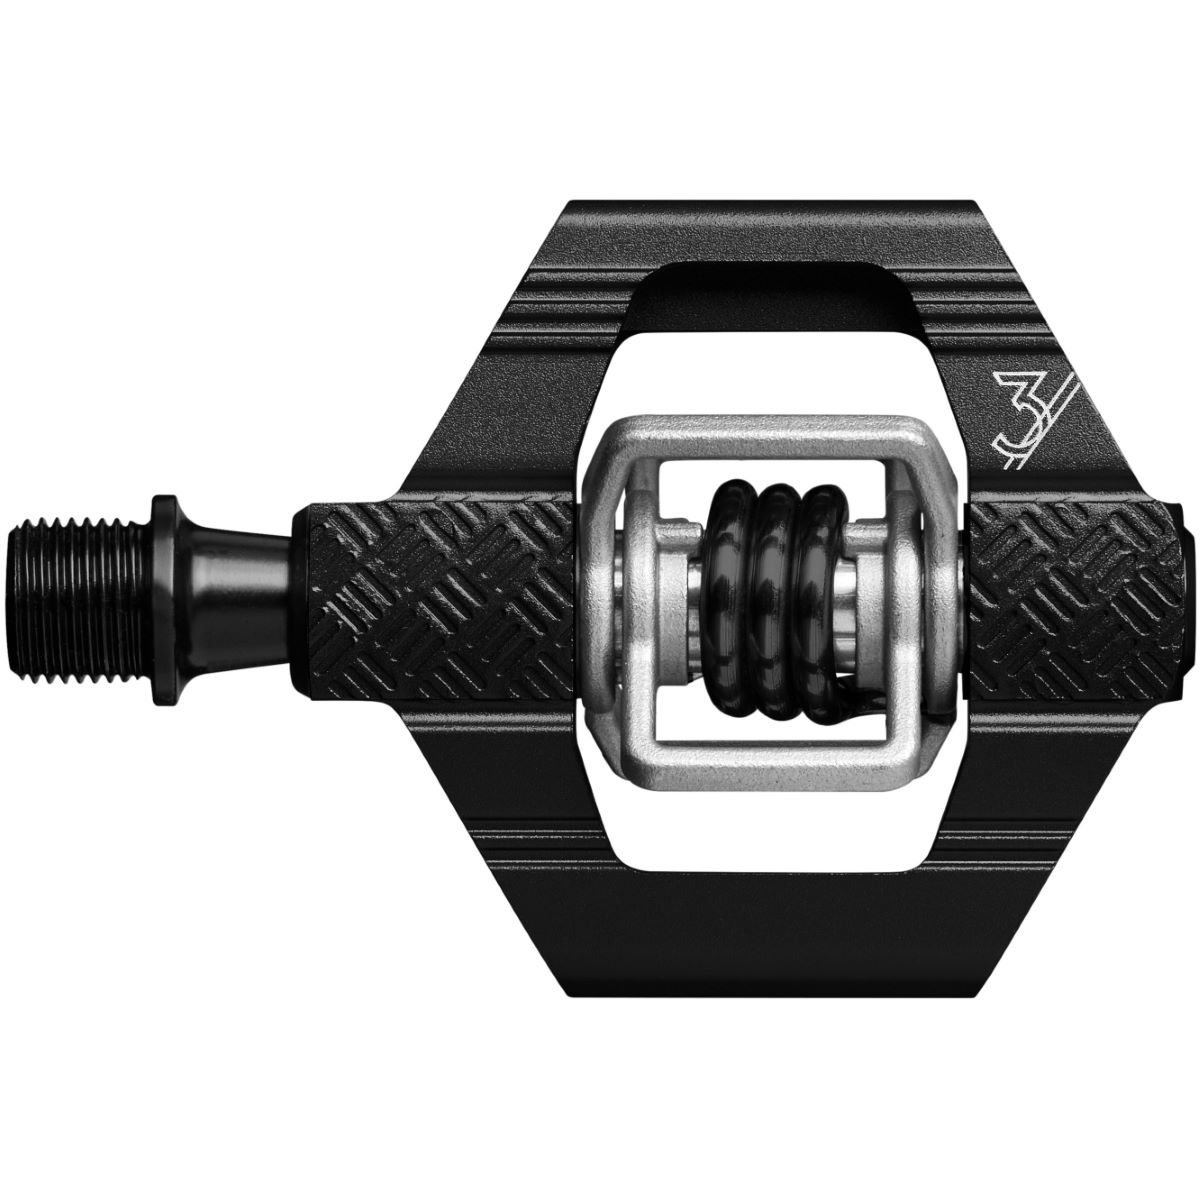 Crank Brothers Crank Brothers Candy 3 Clipless MTB Pedals   Clip-in Pedals